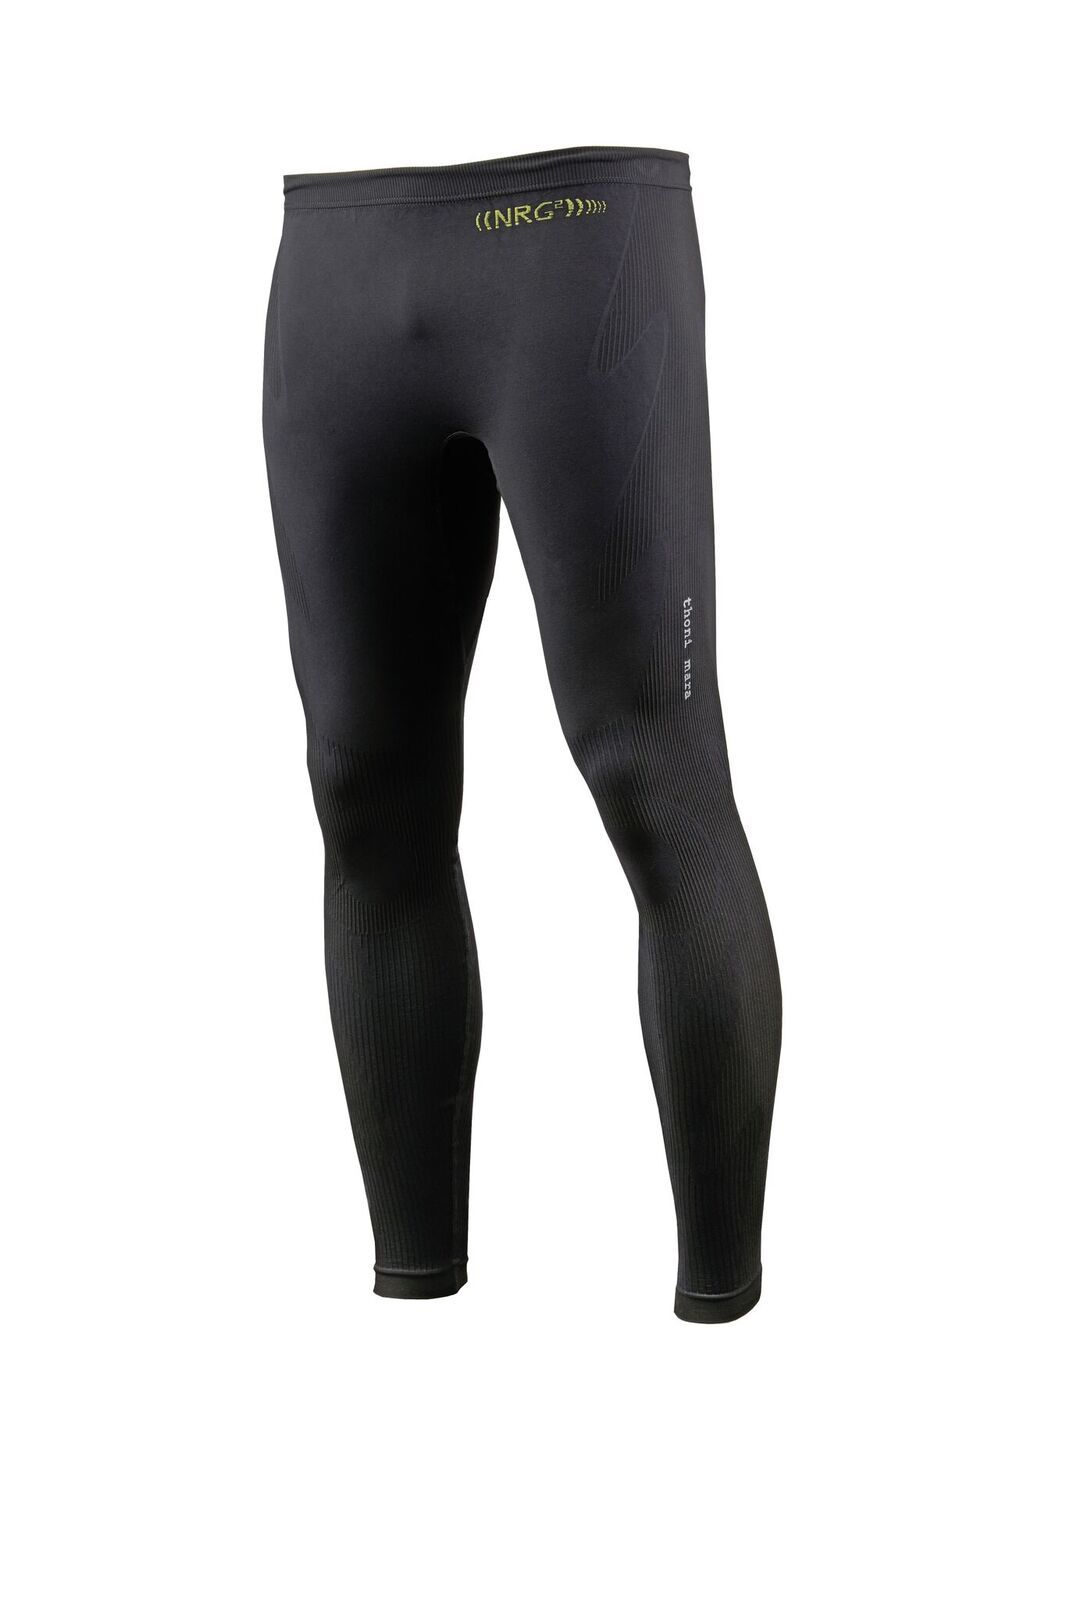 Thonimara NRG Long-Tight in Schwarz